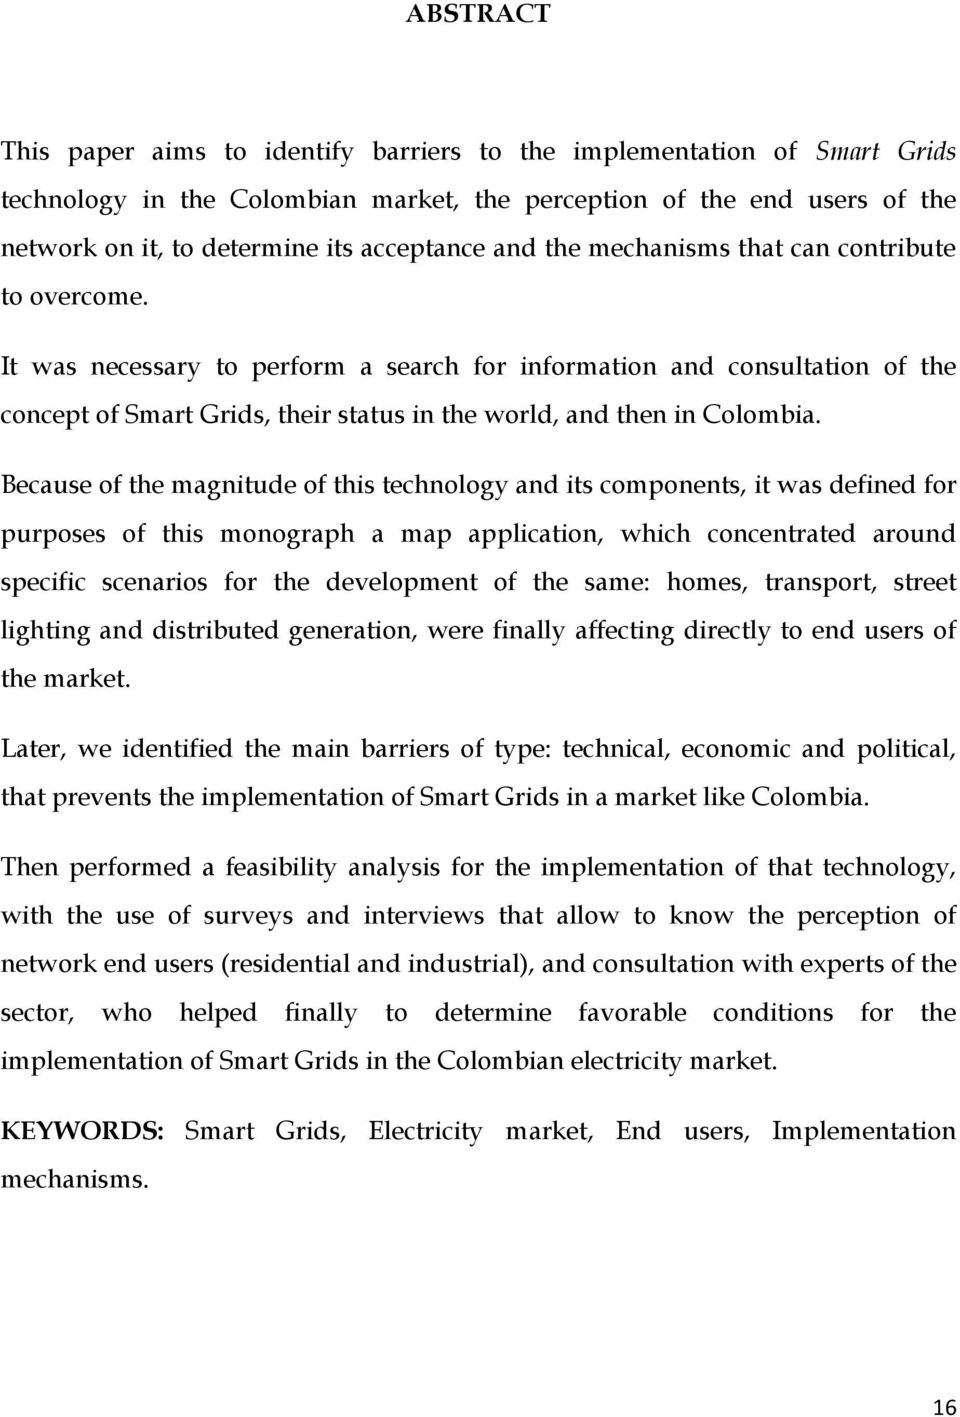 It was necessary to perform a search for information and consultation of the concept of Smart Grids, their status in the world, and then in Colombia.